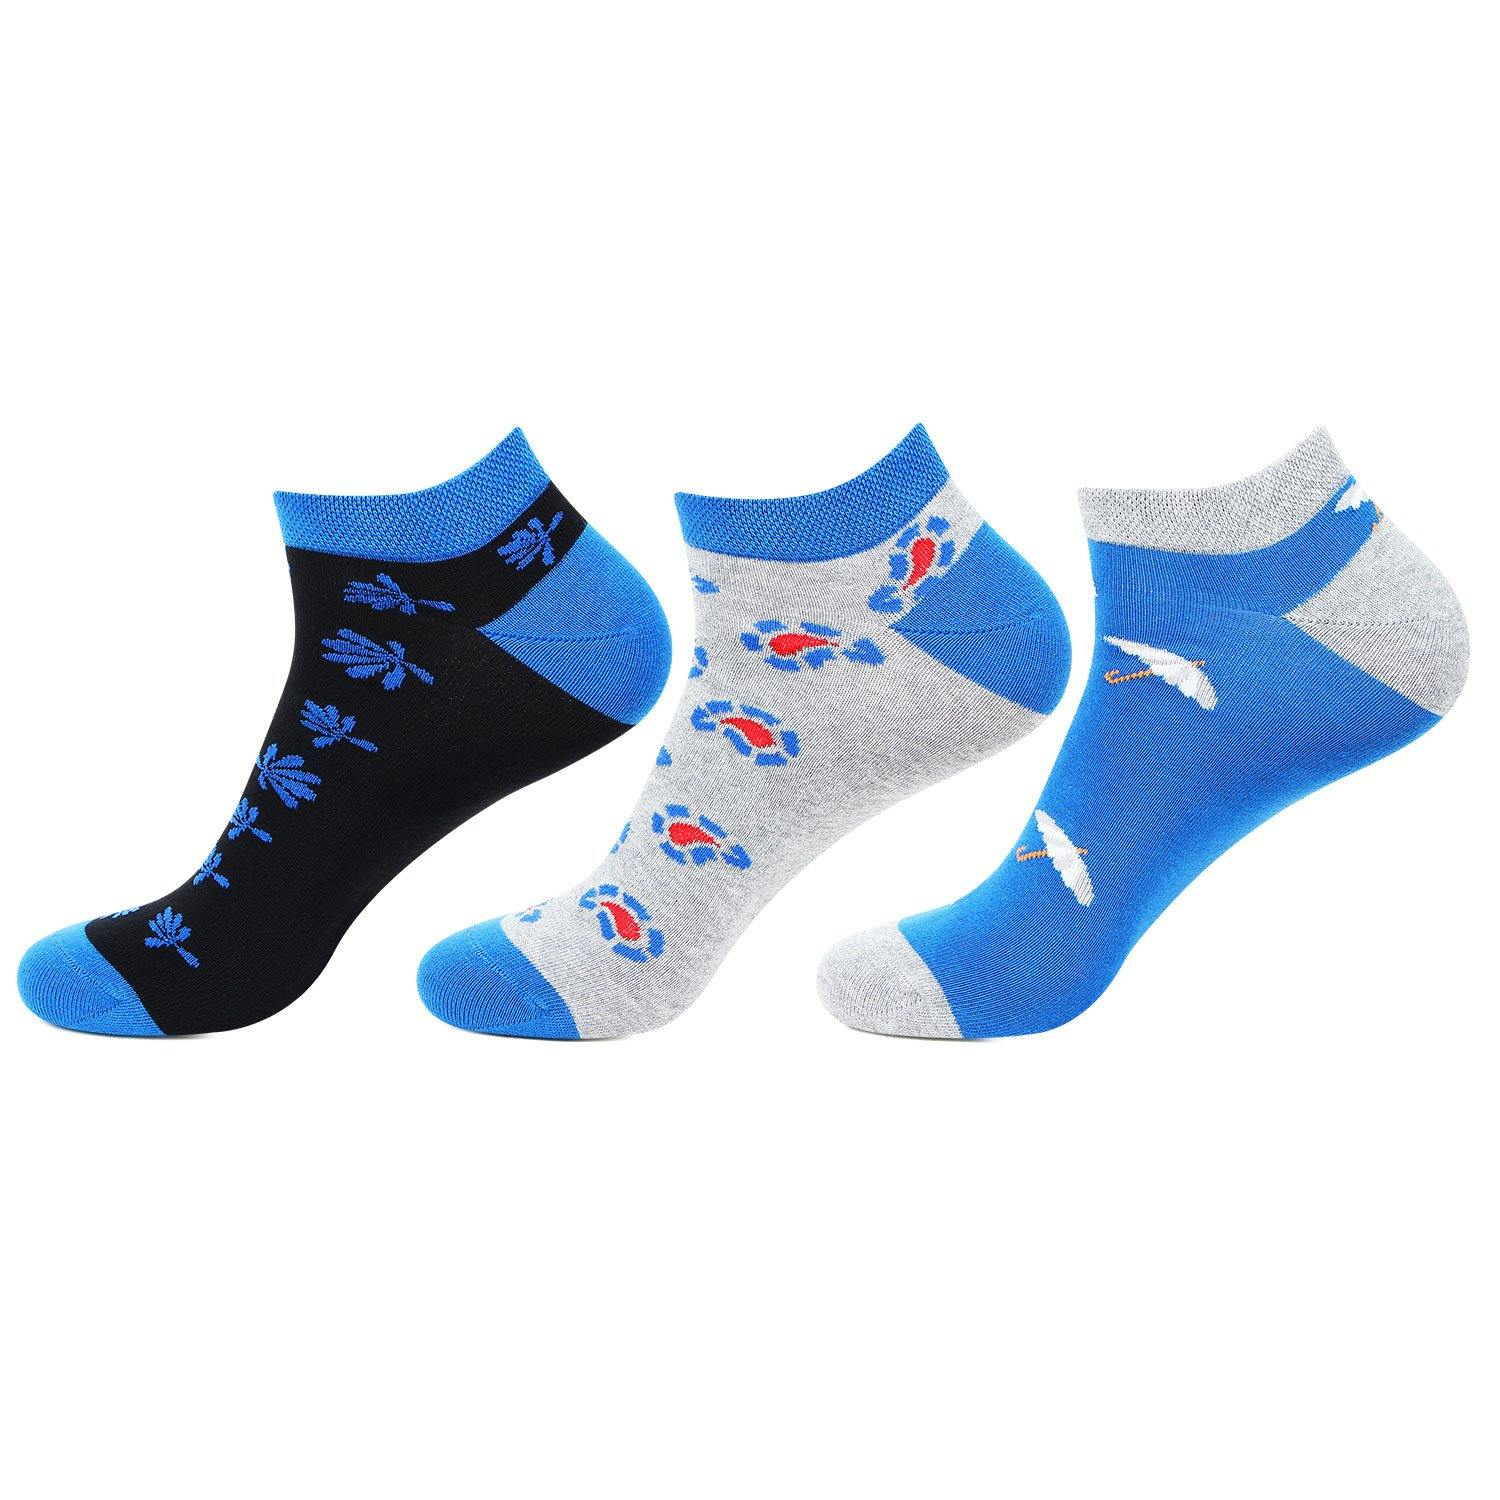 Hush Puppies Men's Cotton Ankle Socks - Pack of 3 - Bonjour Group